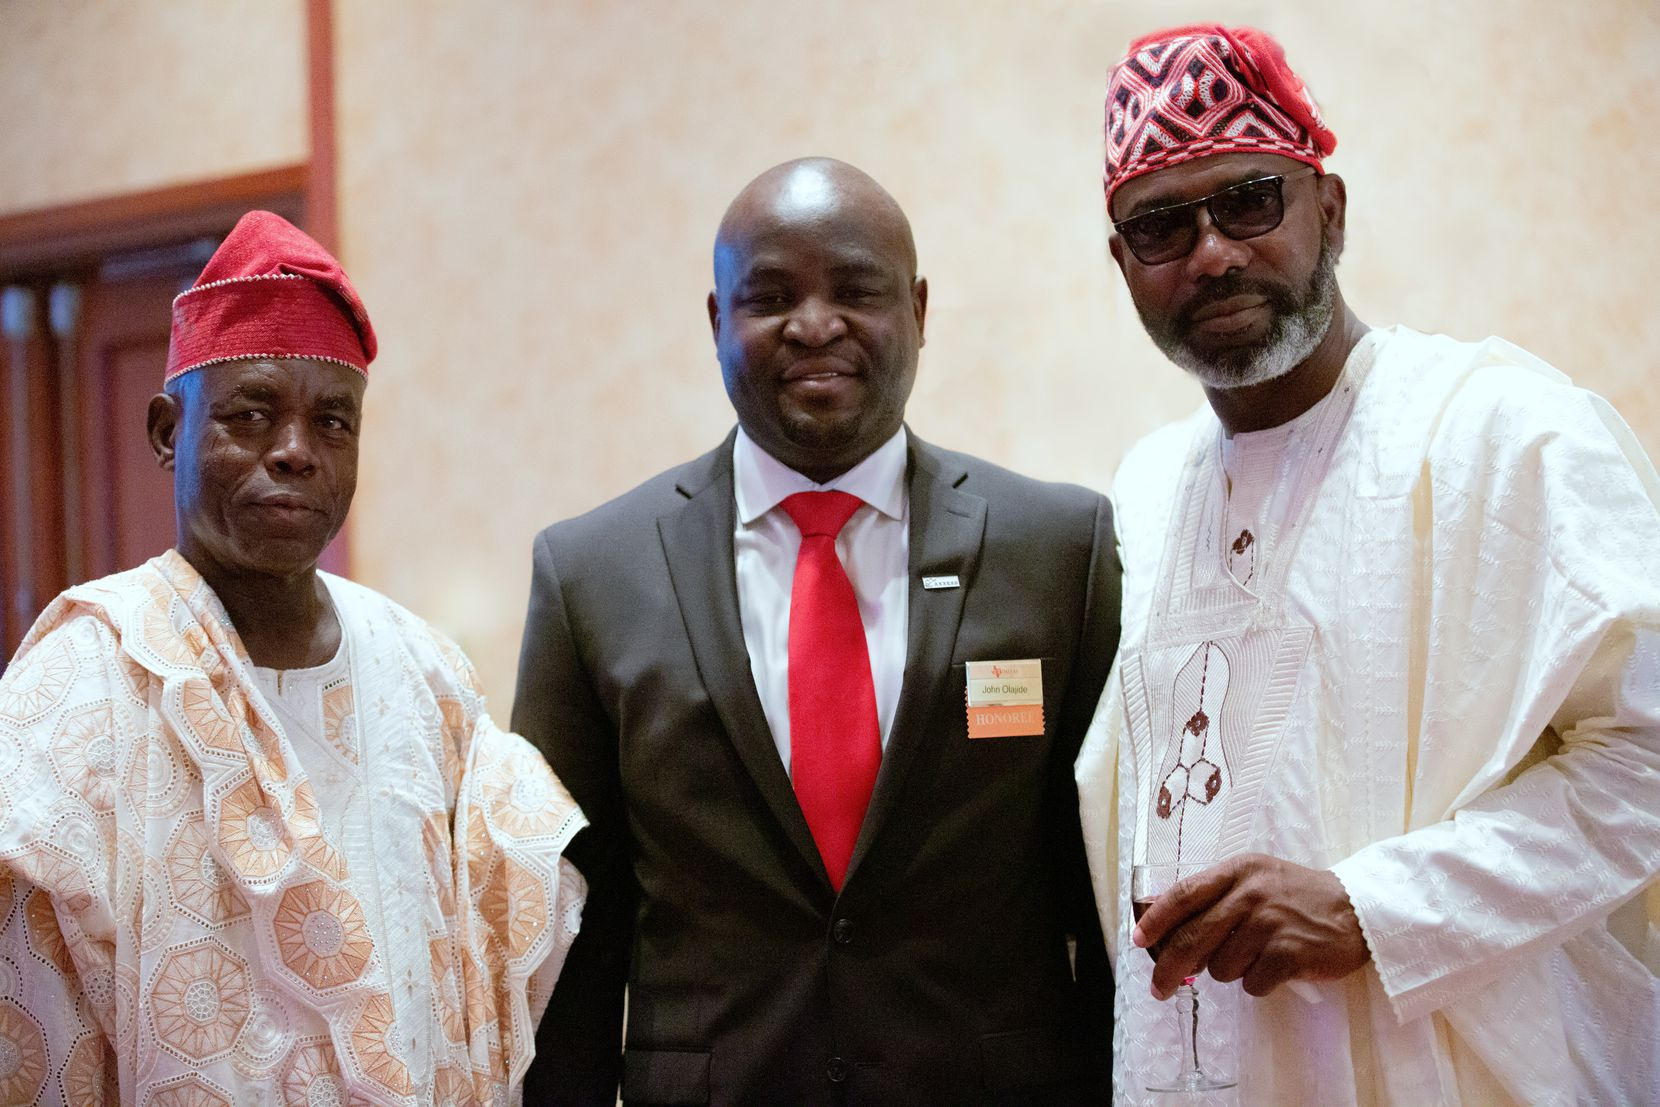 John Olajide, center, stands with his father, Daniel Olajide, right, and his uncle, Kunle Shonaike, at the Distinguished Alumnus reception at the University of Texas at Dallas in 2016.